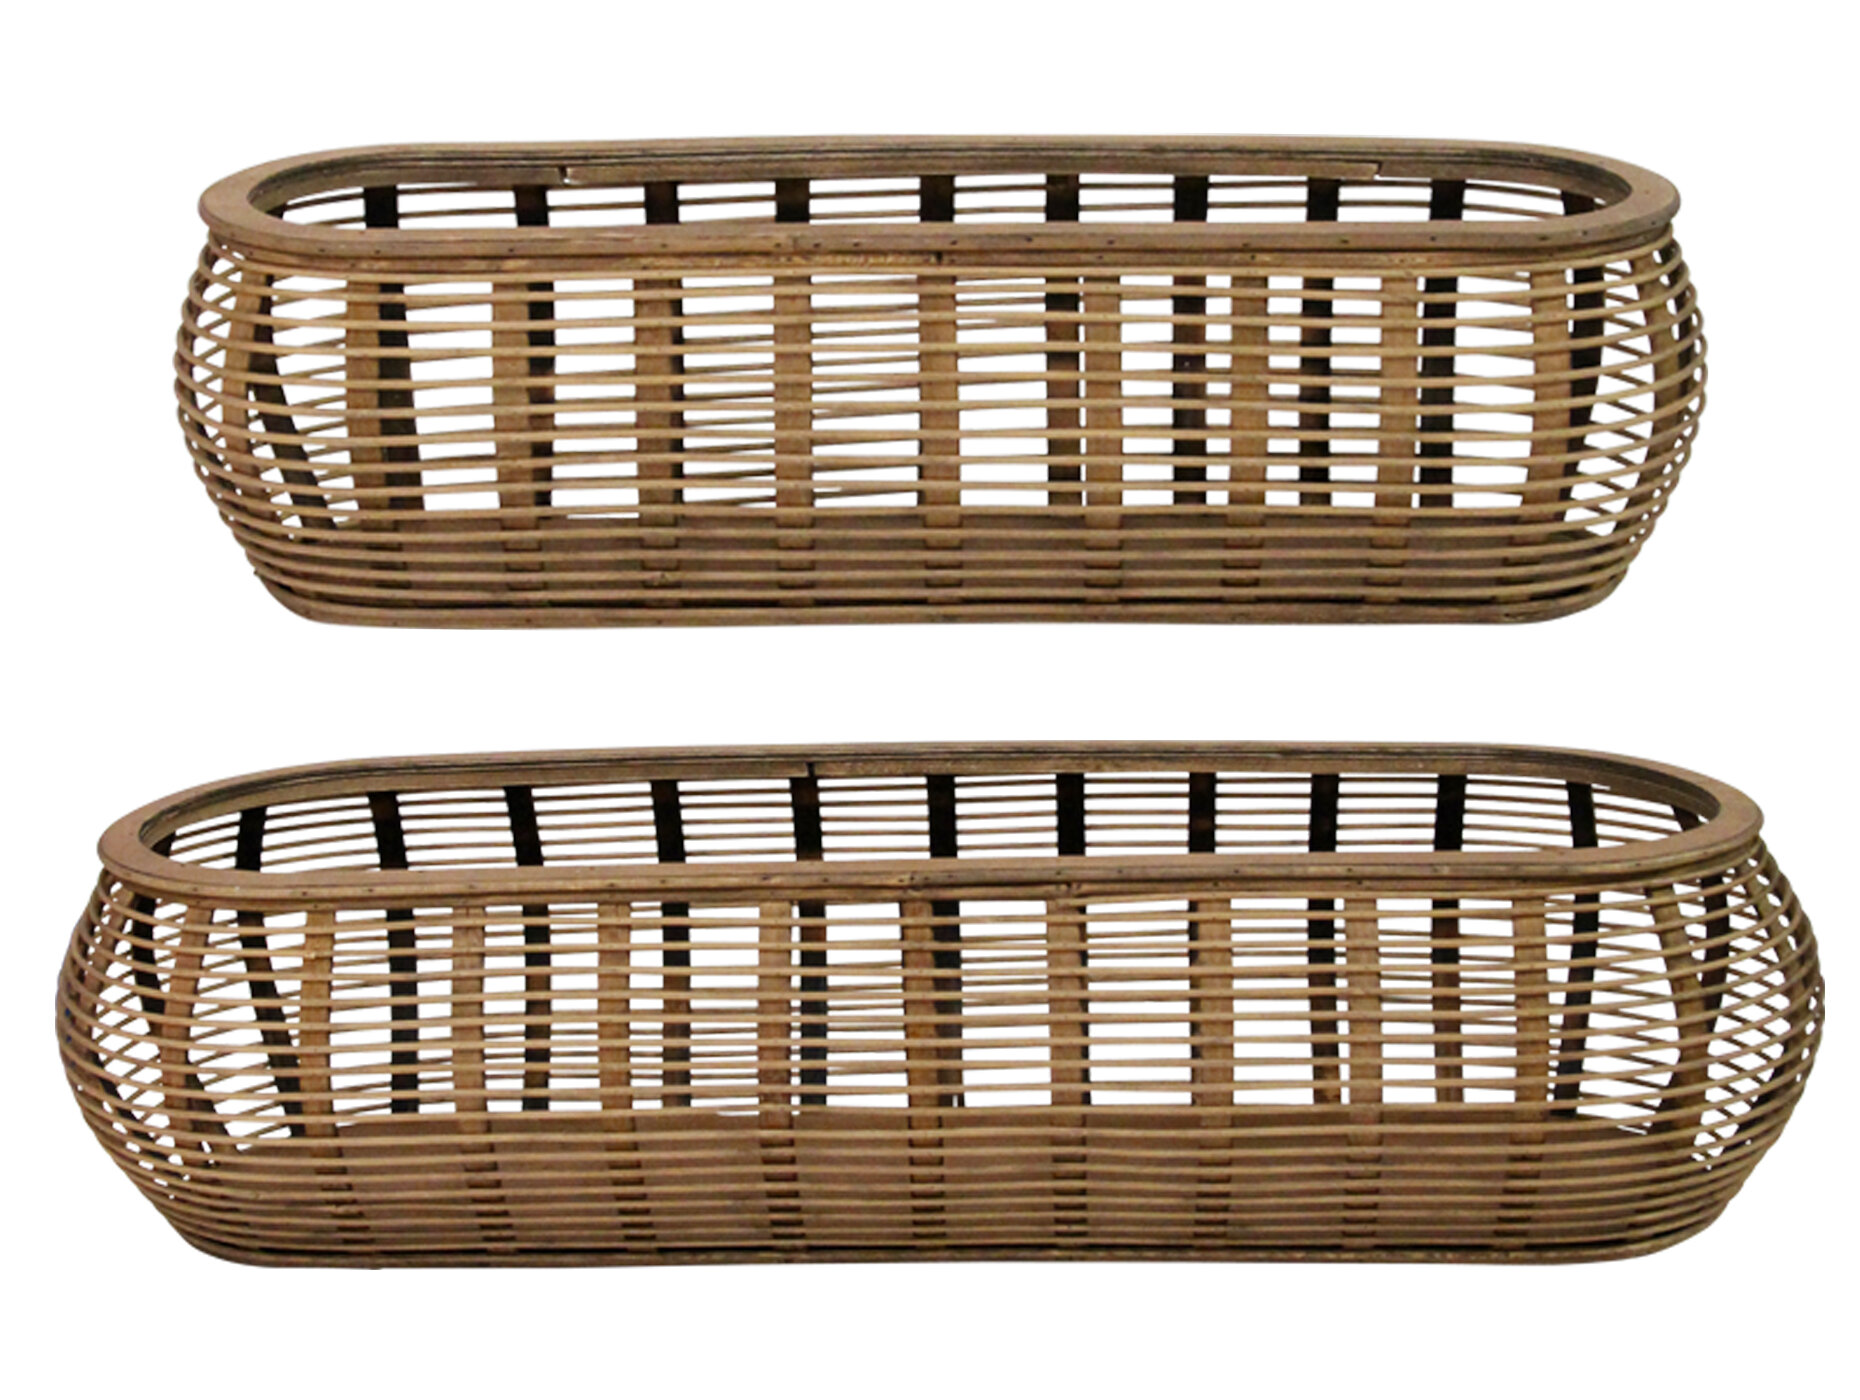 Bay Isle Home Tulum 2 Piece Solid Wood Basket Set Reviews Wayfair